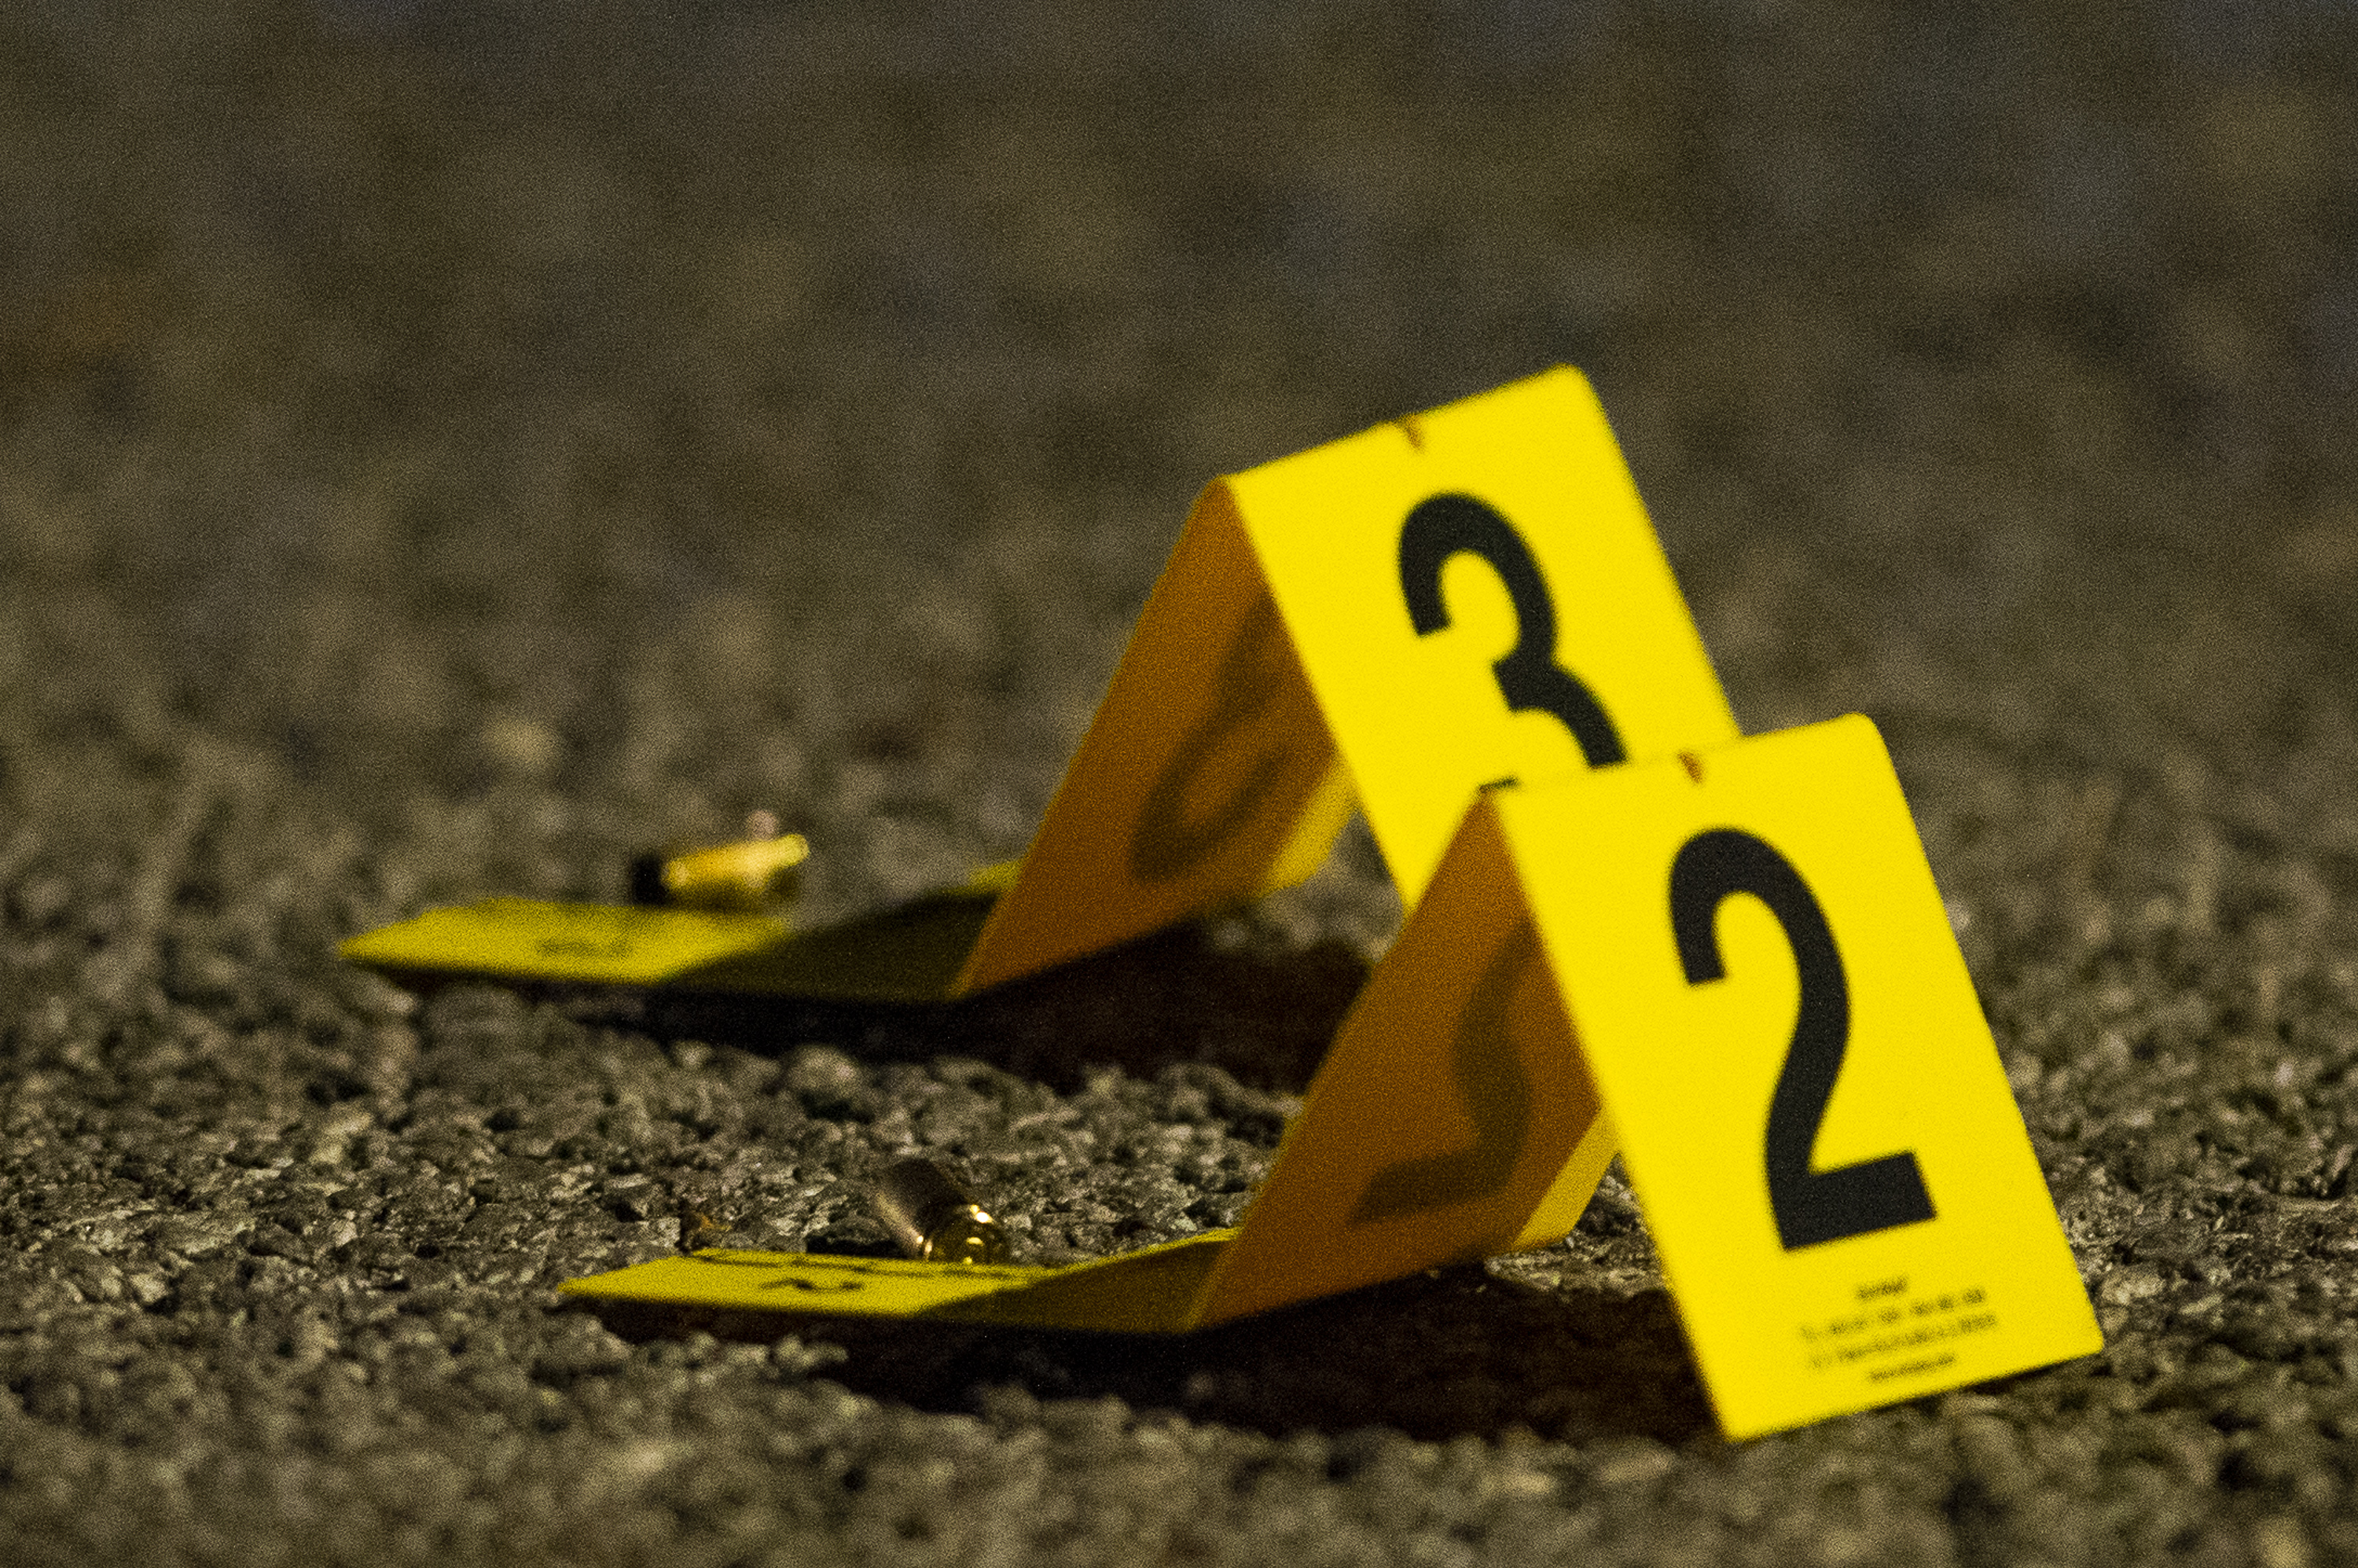 A man was killed and two others were injured in a shooting June 19, 2020, in the 900 block of East 79th Street.